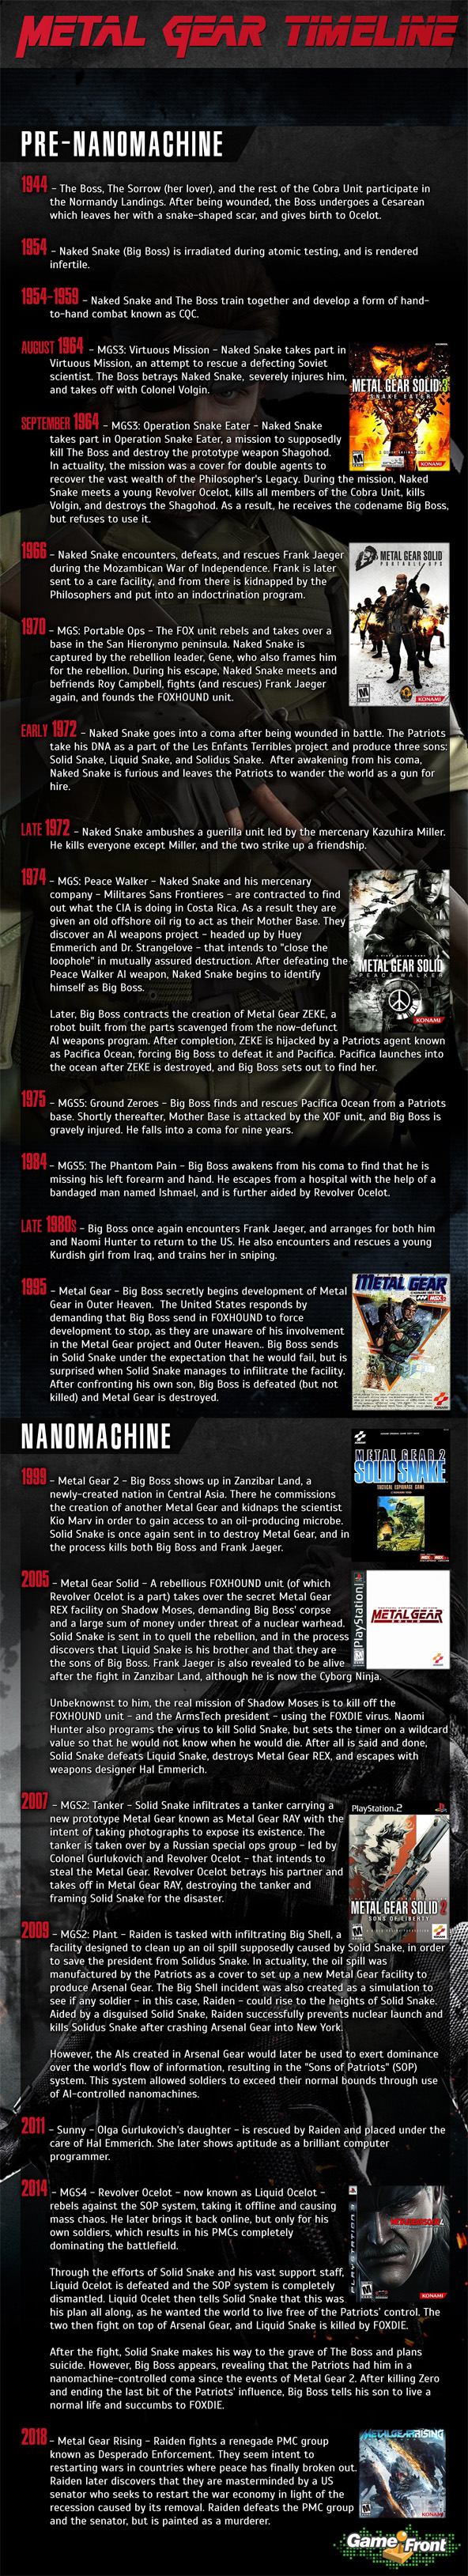 Metal Gear Timeline infographic